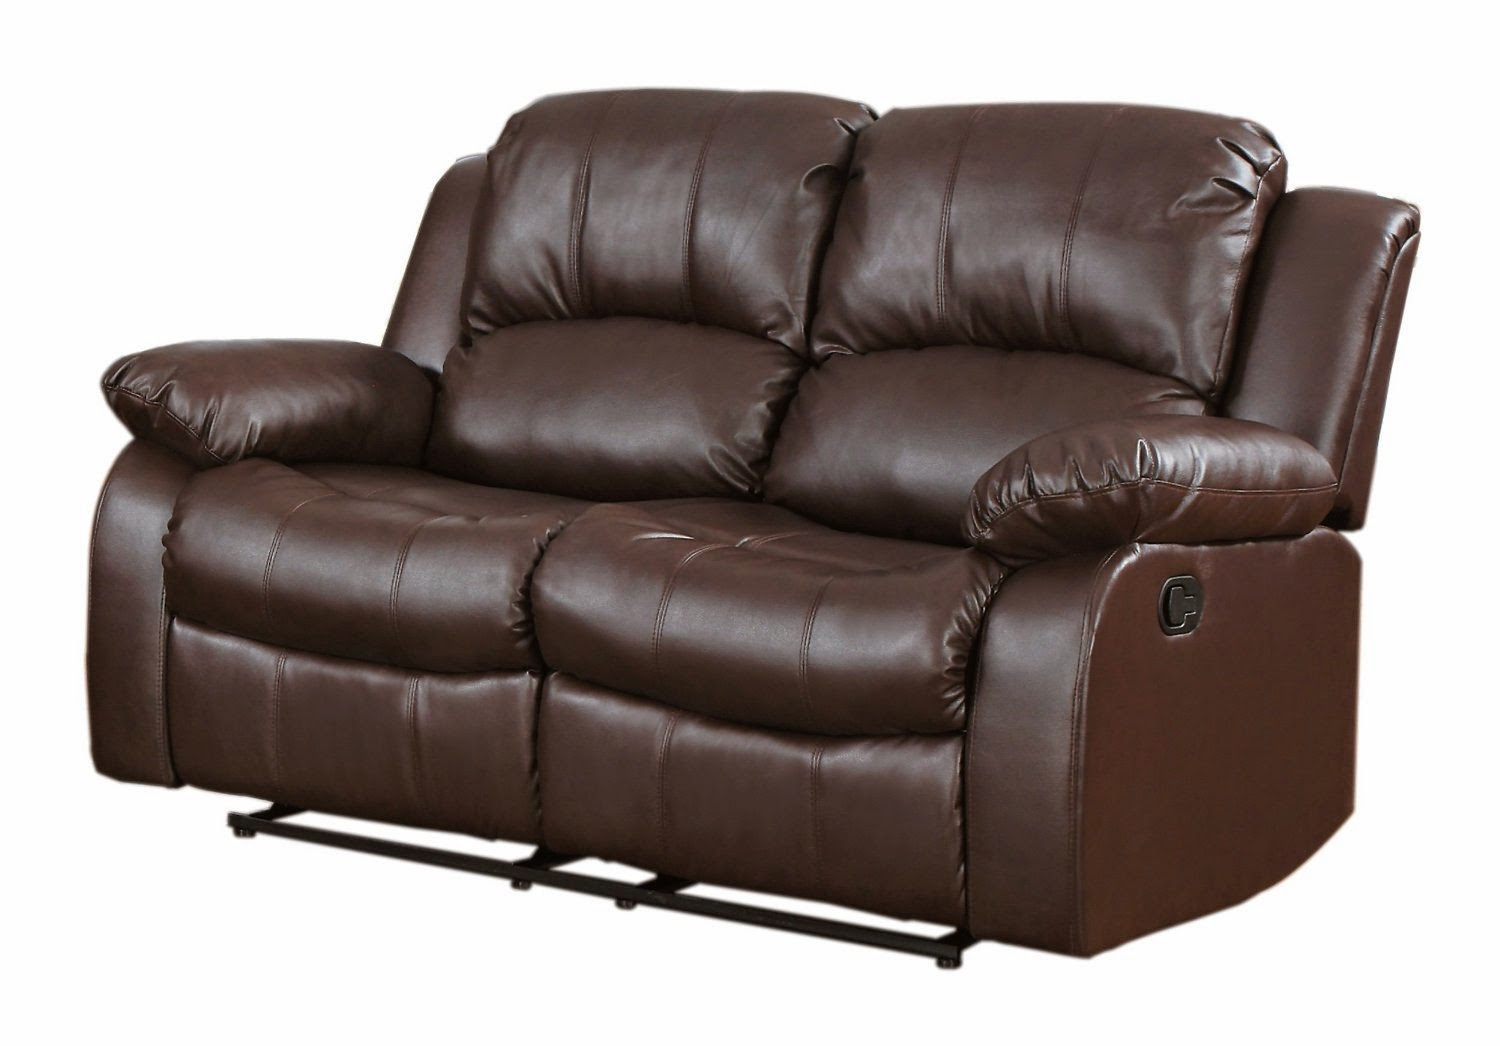 The best reclining sofas ratings reviews cheap faux leather recliner sofas Discount sofa loveseat